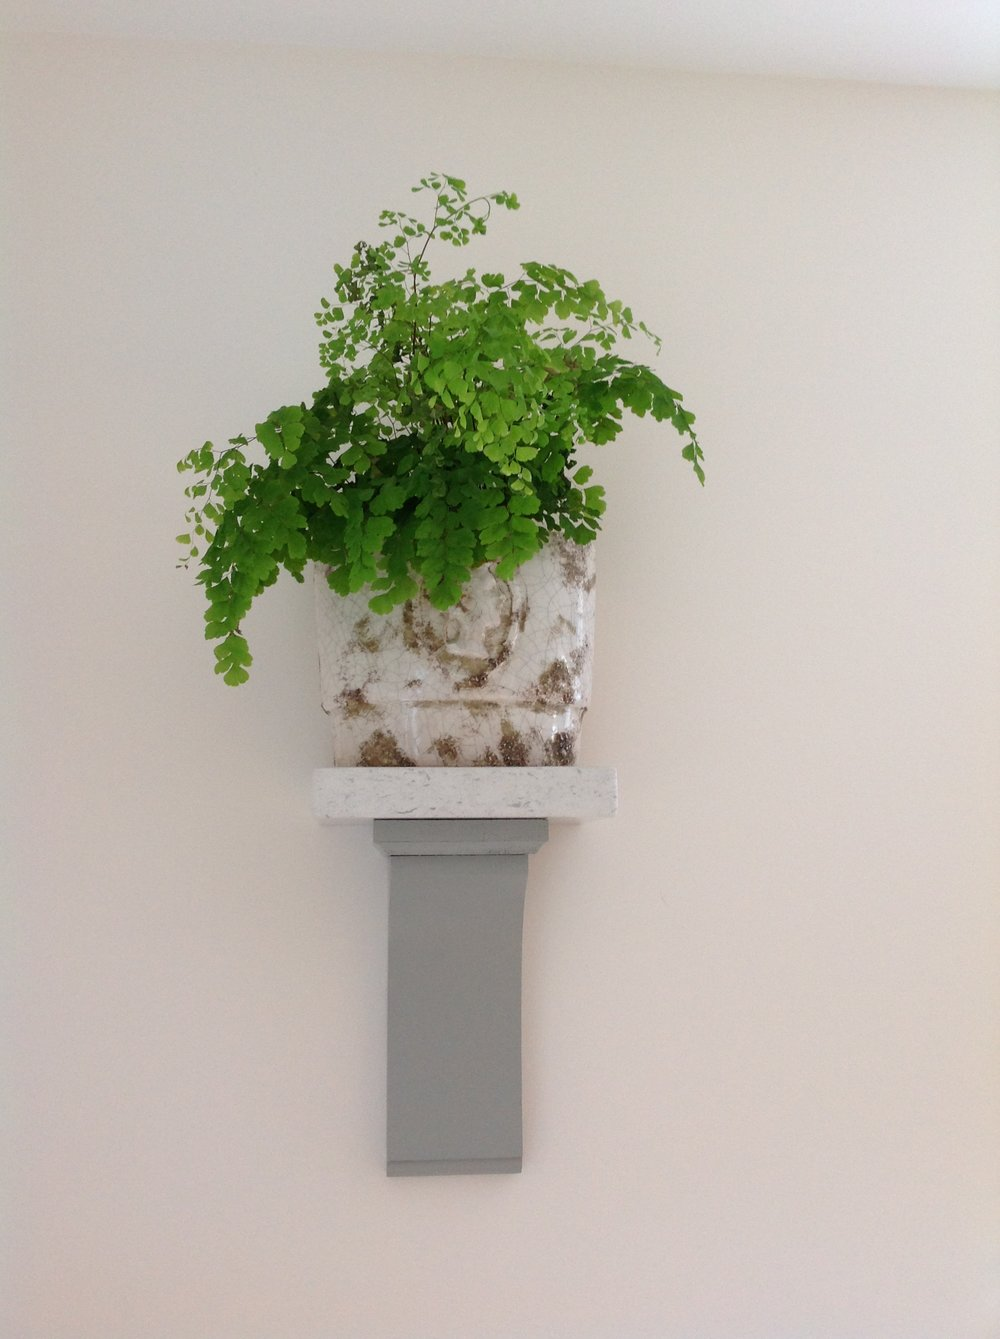 Burbridge Erin Kitchen corbel with house plant